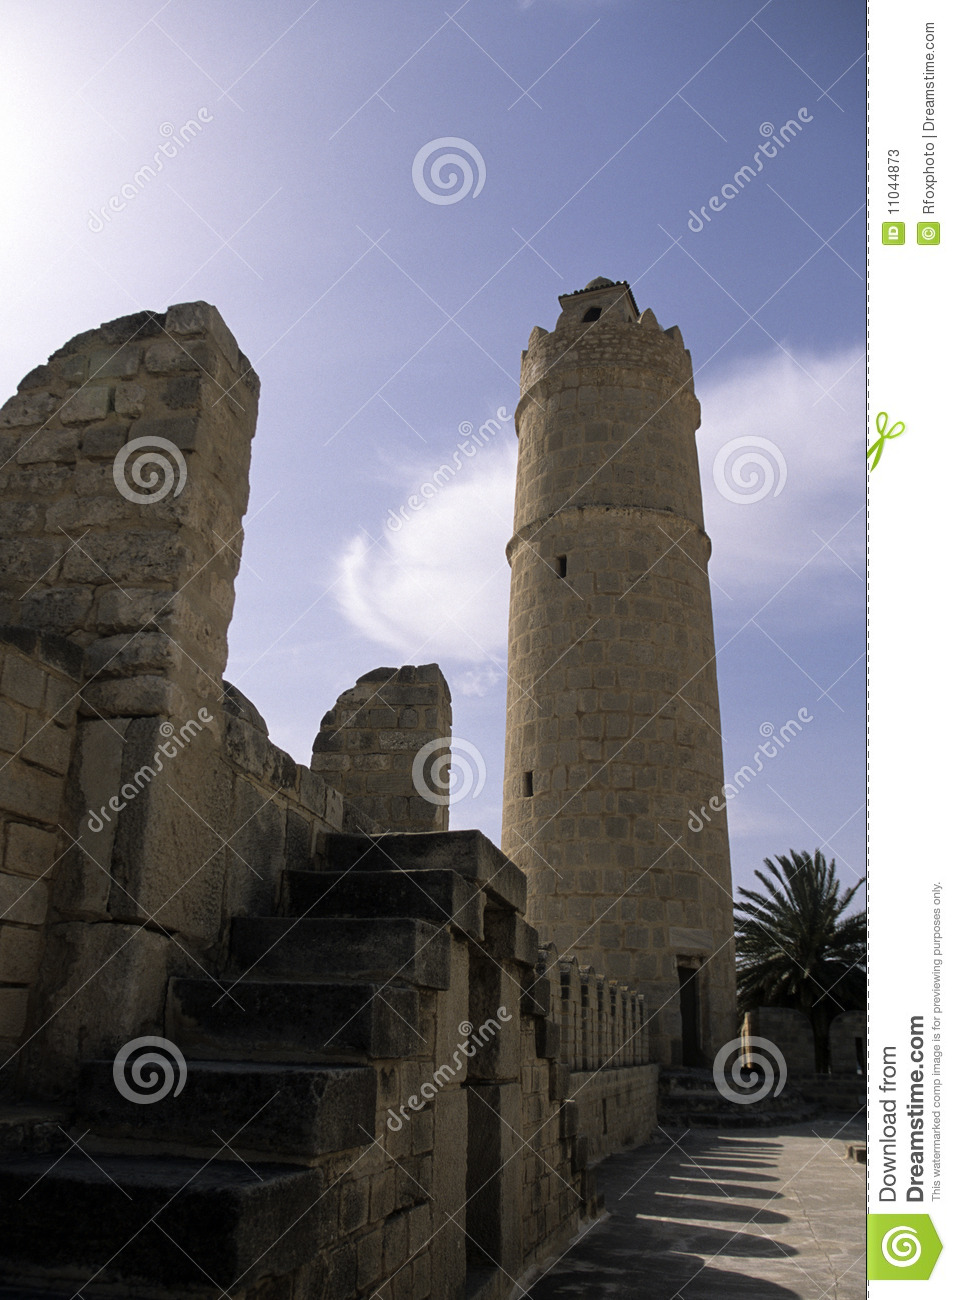 Islamic fort- Tunisia stock image. Image of blue 6d770595ffa